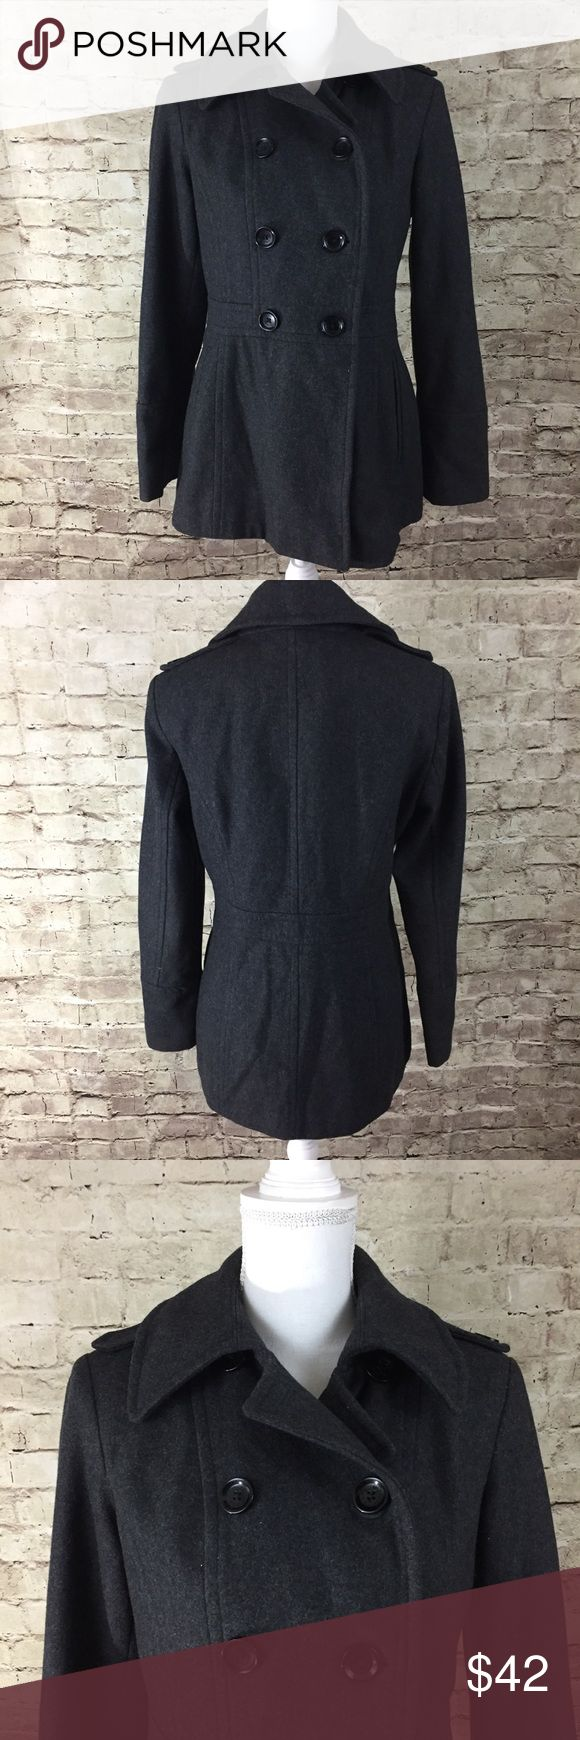 MICHAEL Michael Kors Grey Pea Coat Charcoal grey wool blend pea coat in gently used condition. Fully lined with functional front buttons and pockets. Only flaw is missing one decorative button on the shoulder area. MICHAEL Michael Kors Jackets & Coats Pea Coats